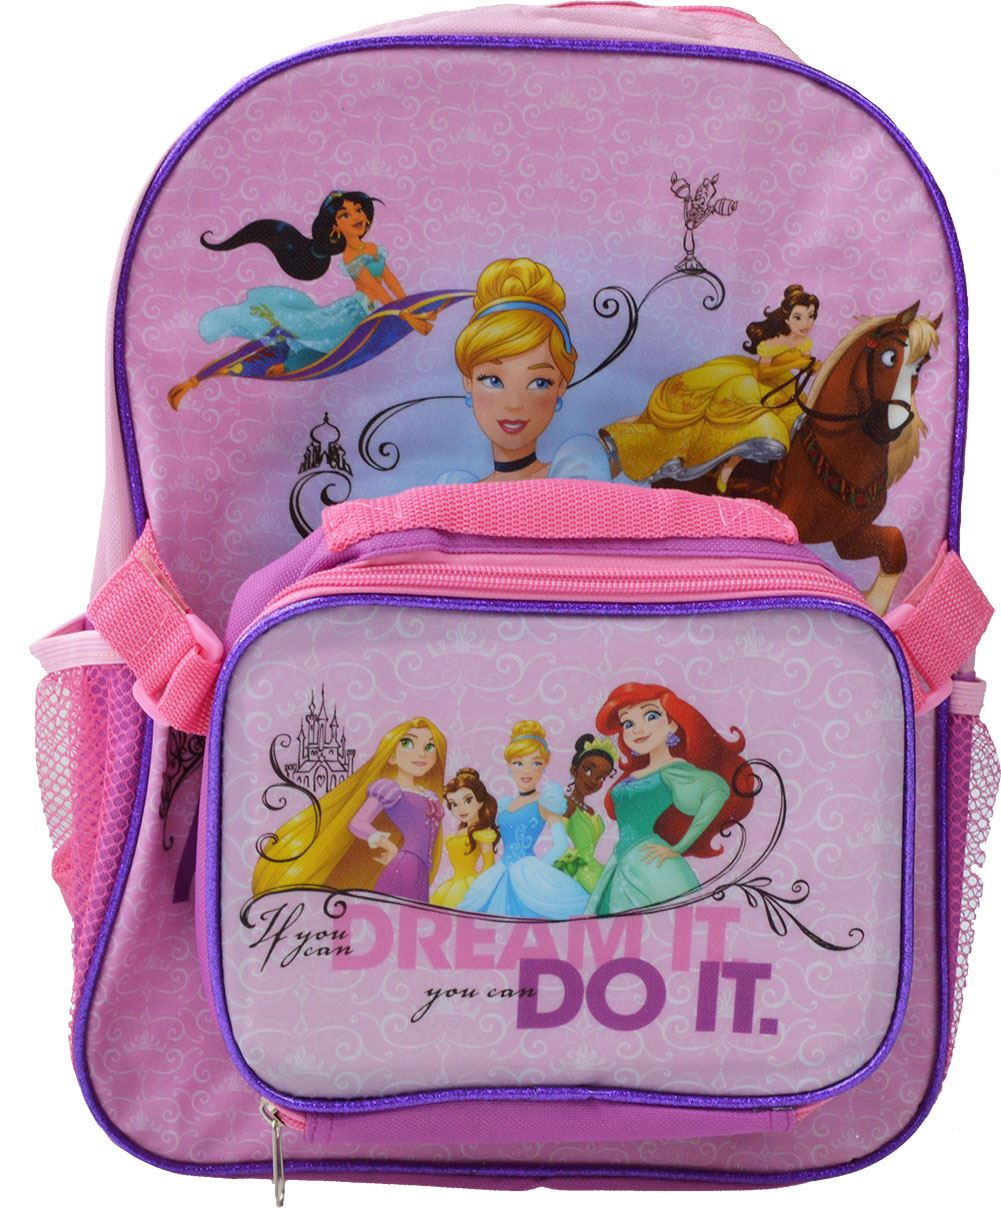 c958c3bcb68 Princess Junior Backpack with Lunch Bag 5055114331866